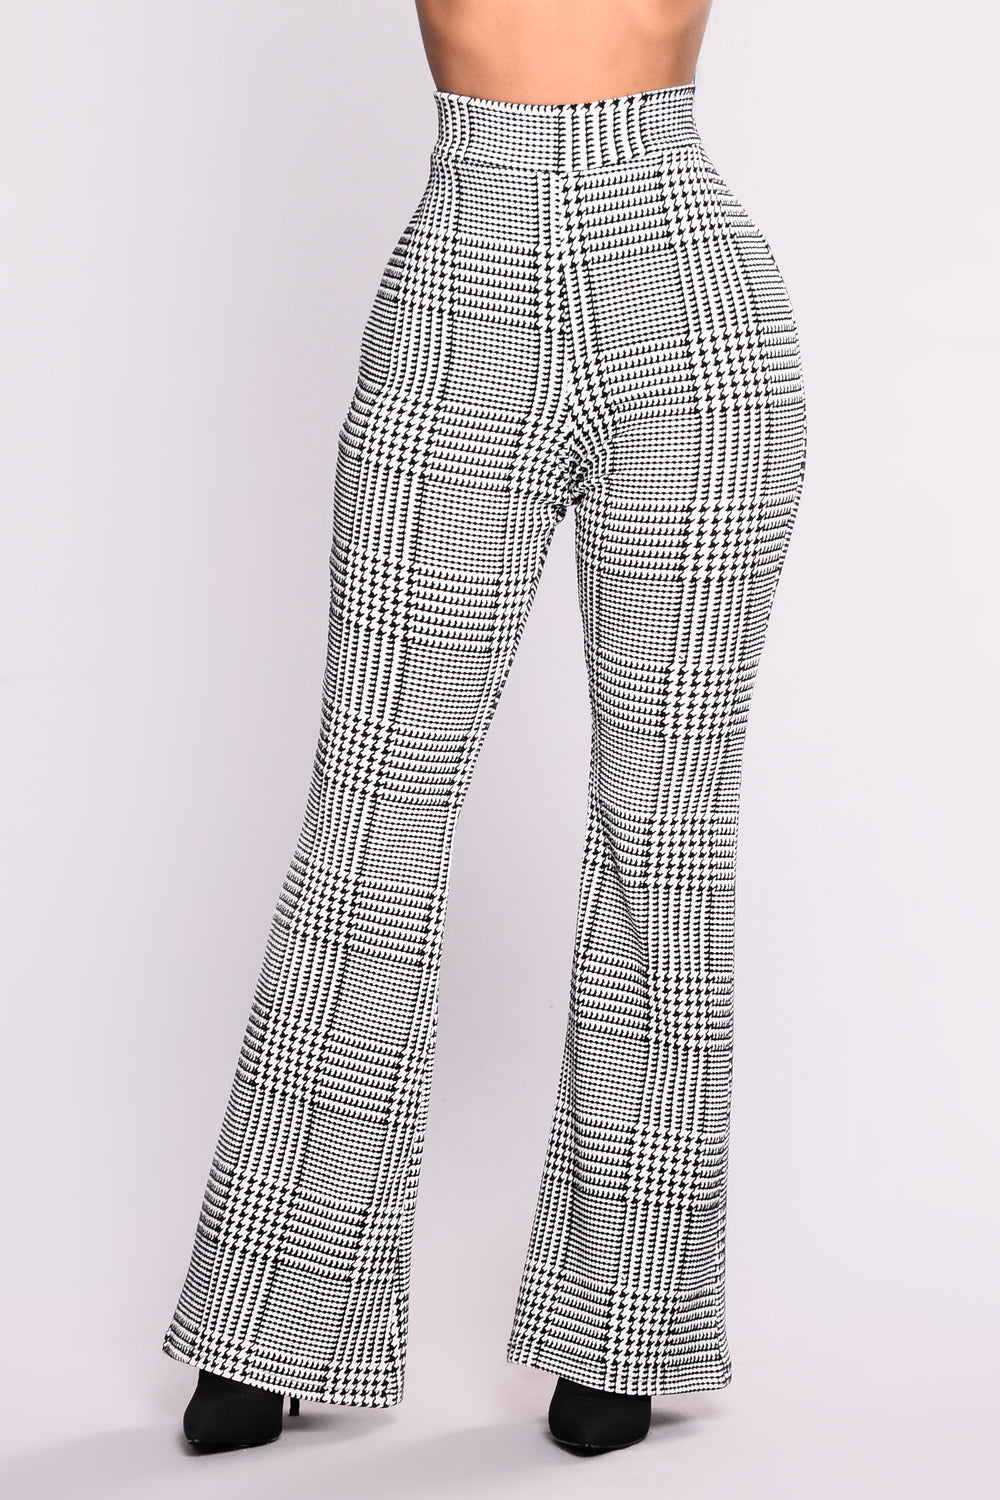 Houndstooth Wide Leg Trouser Pants - Black/White